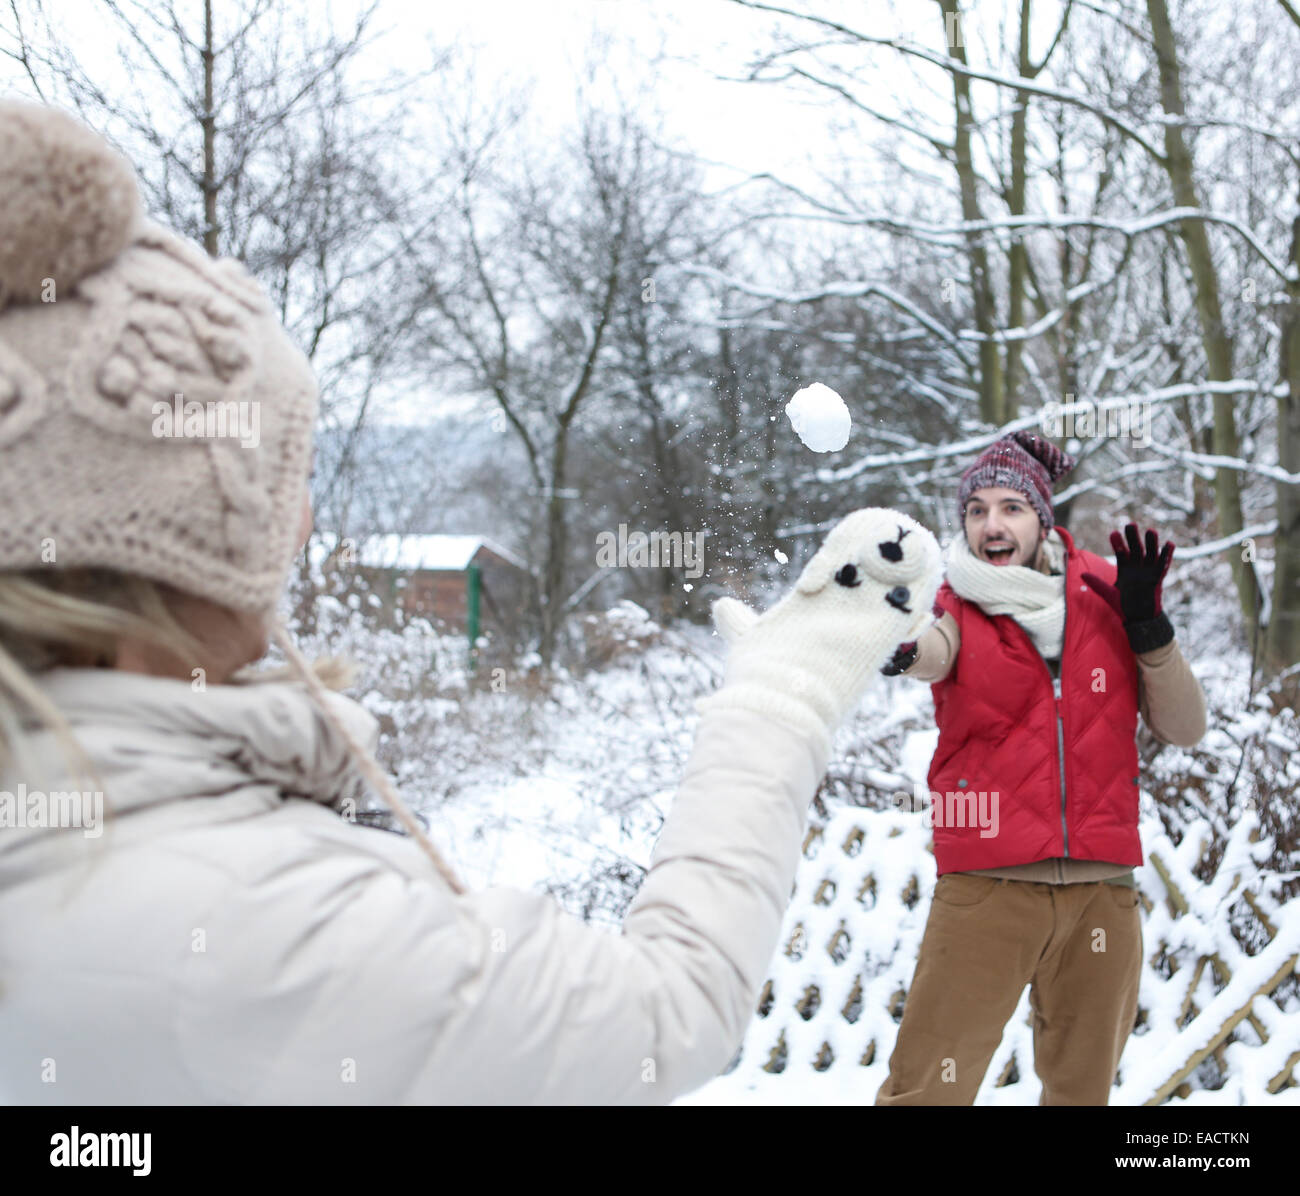 Man and woman doing a snowball fight in winter - Stock Image